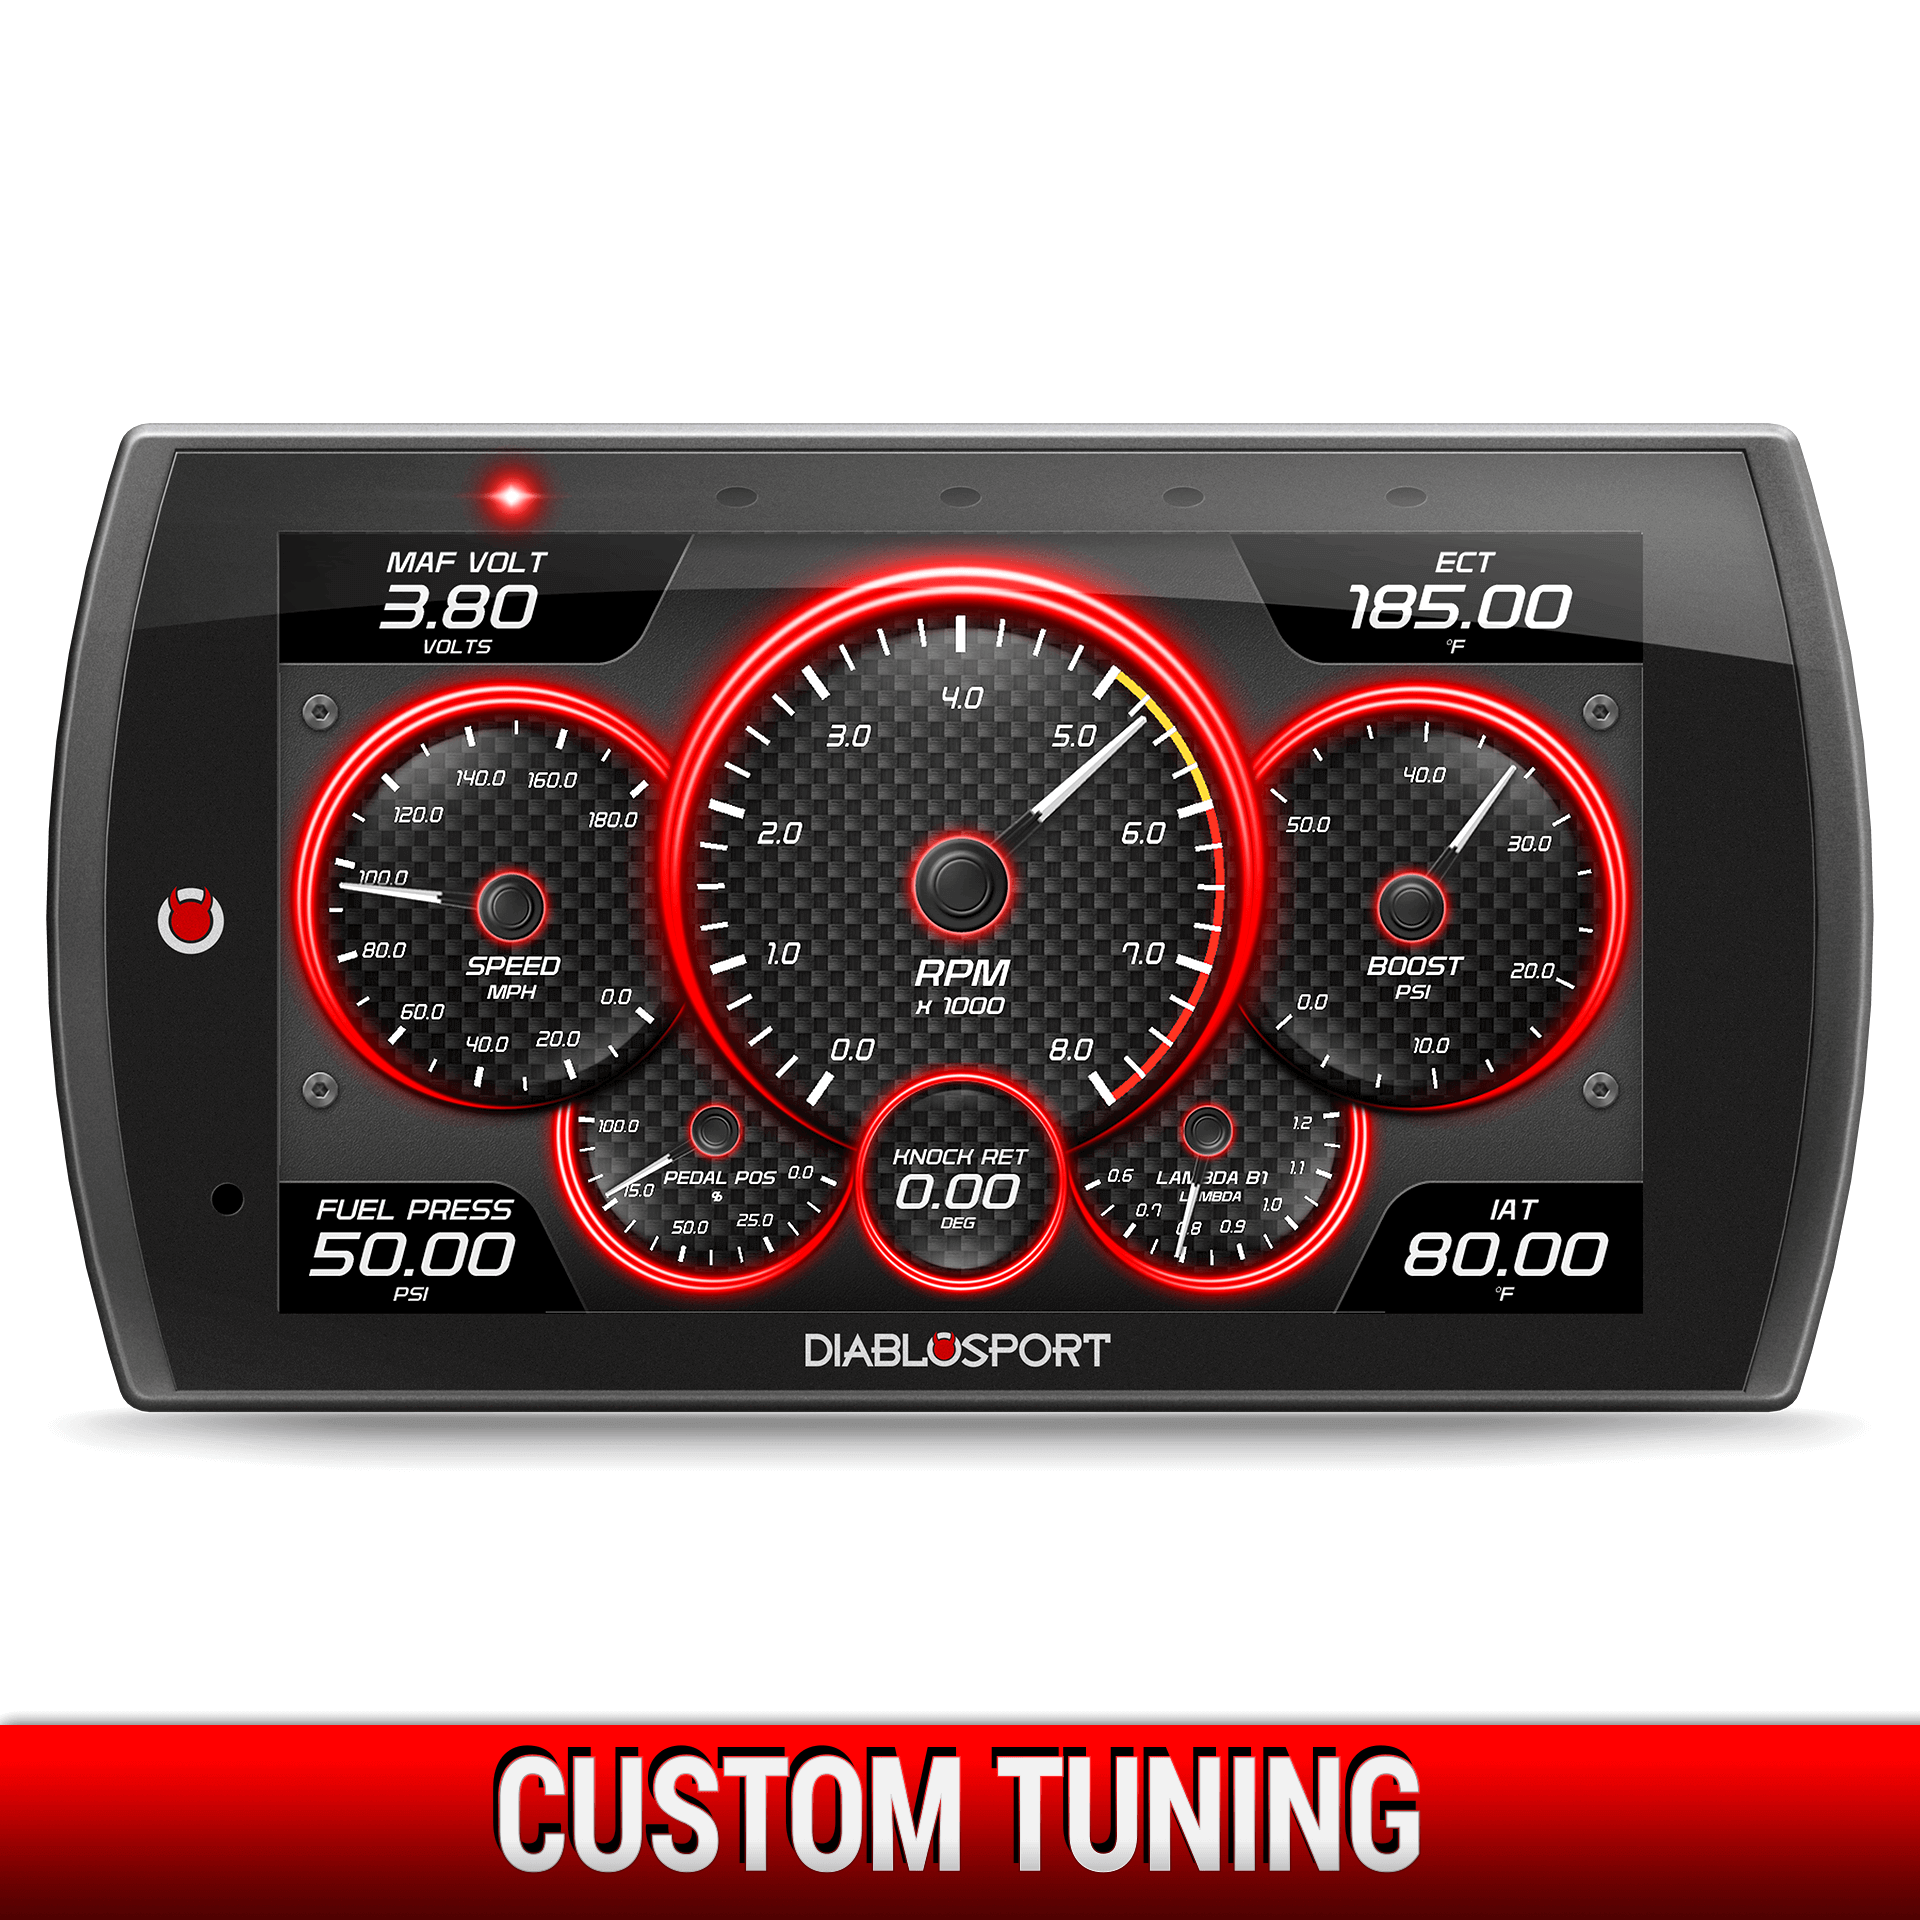 Improve Your Fuel Mileage Innovative Performance Chip//Power Programmer for Lincoln Mark LT 5.0L and 5.4L Save Gas /& Gain More MPG Increase Horsepower /& Torque with this Engine Tuner!